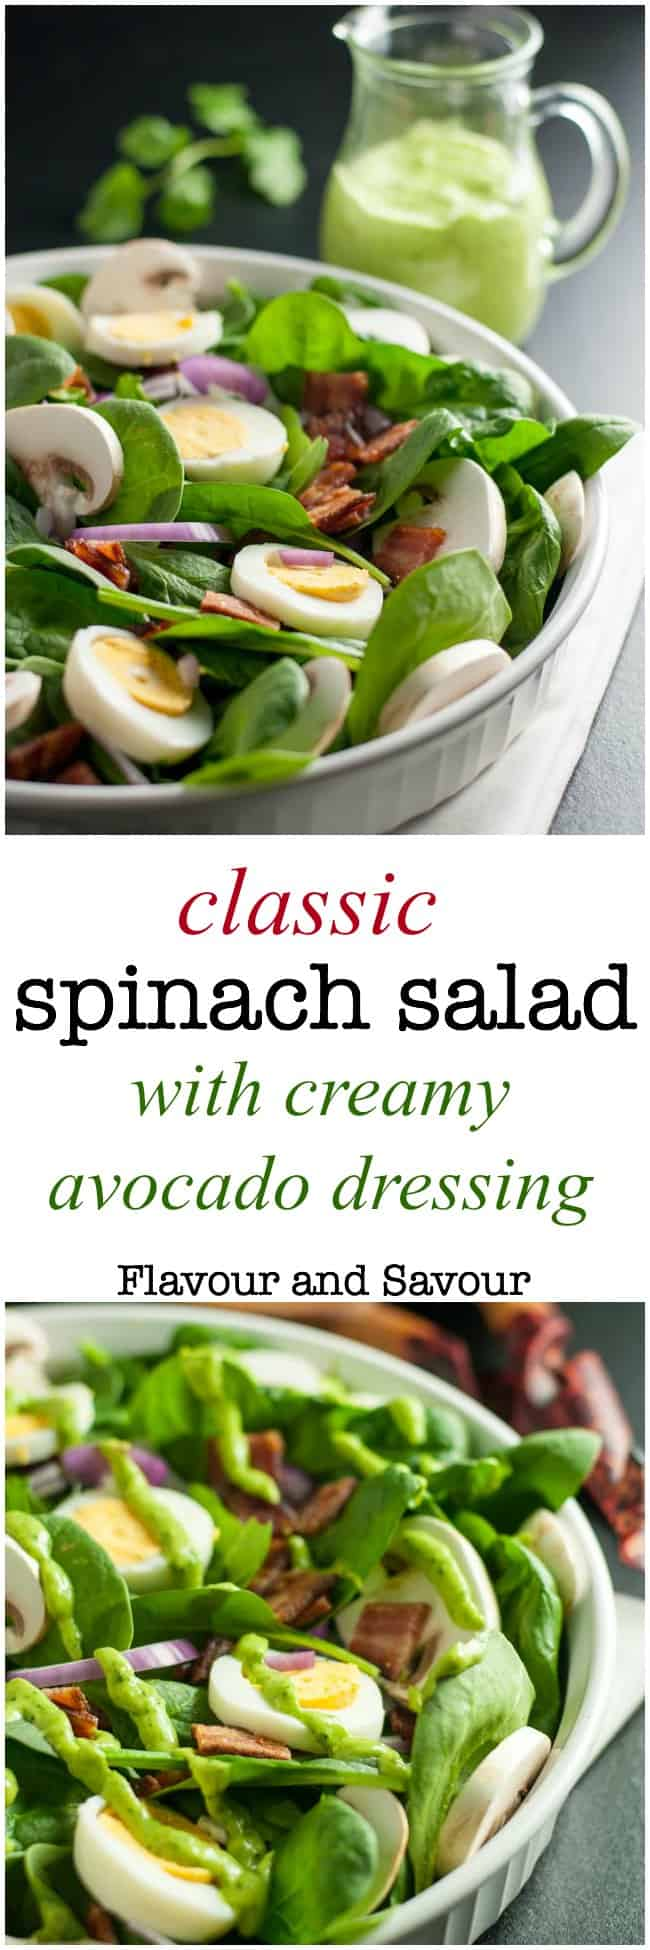 Love spinach salad but hate the high-fat buttermilk dressing? Try this updated paleo spinach salad with creamy dairy-free avocado dressing. So good! #paleo #whole30 #nomayo #avocadocream